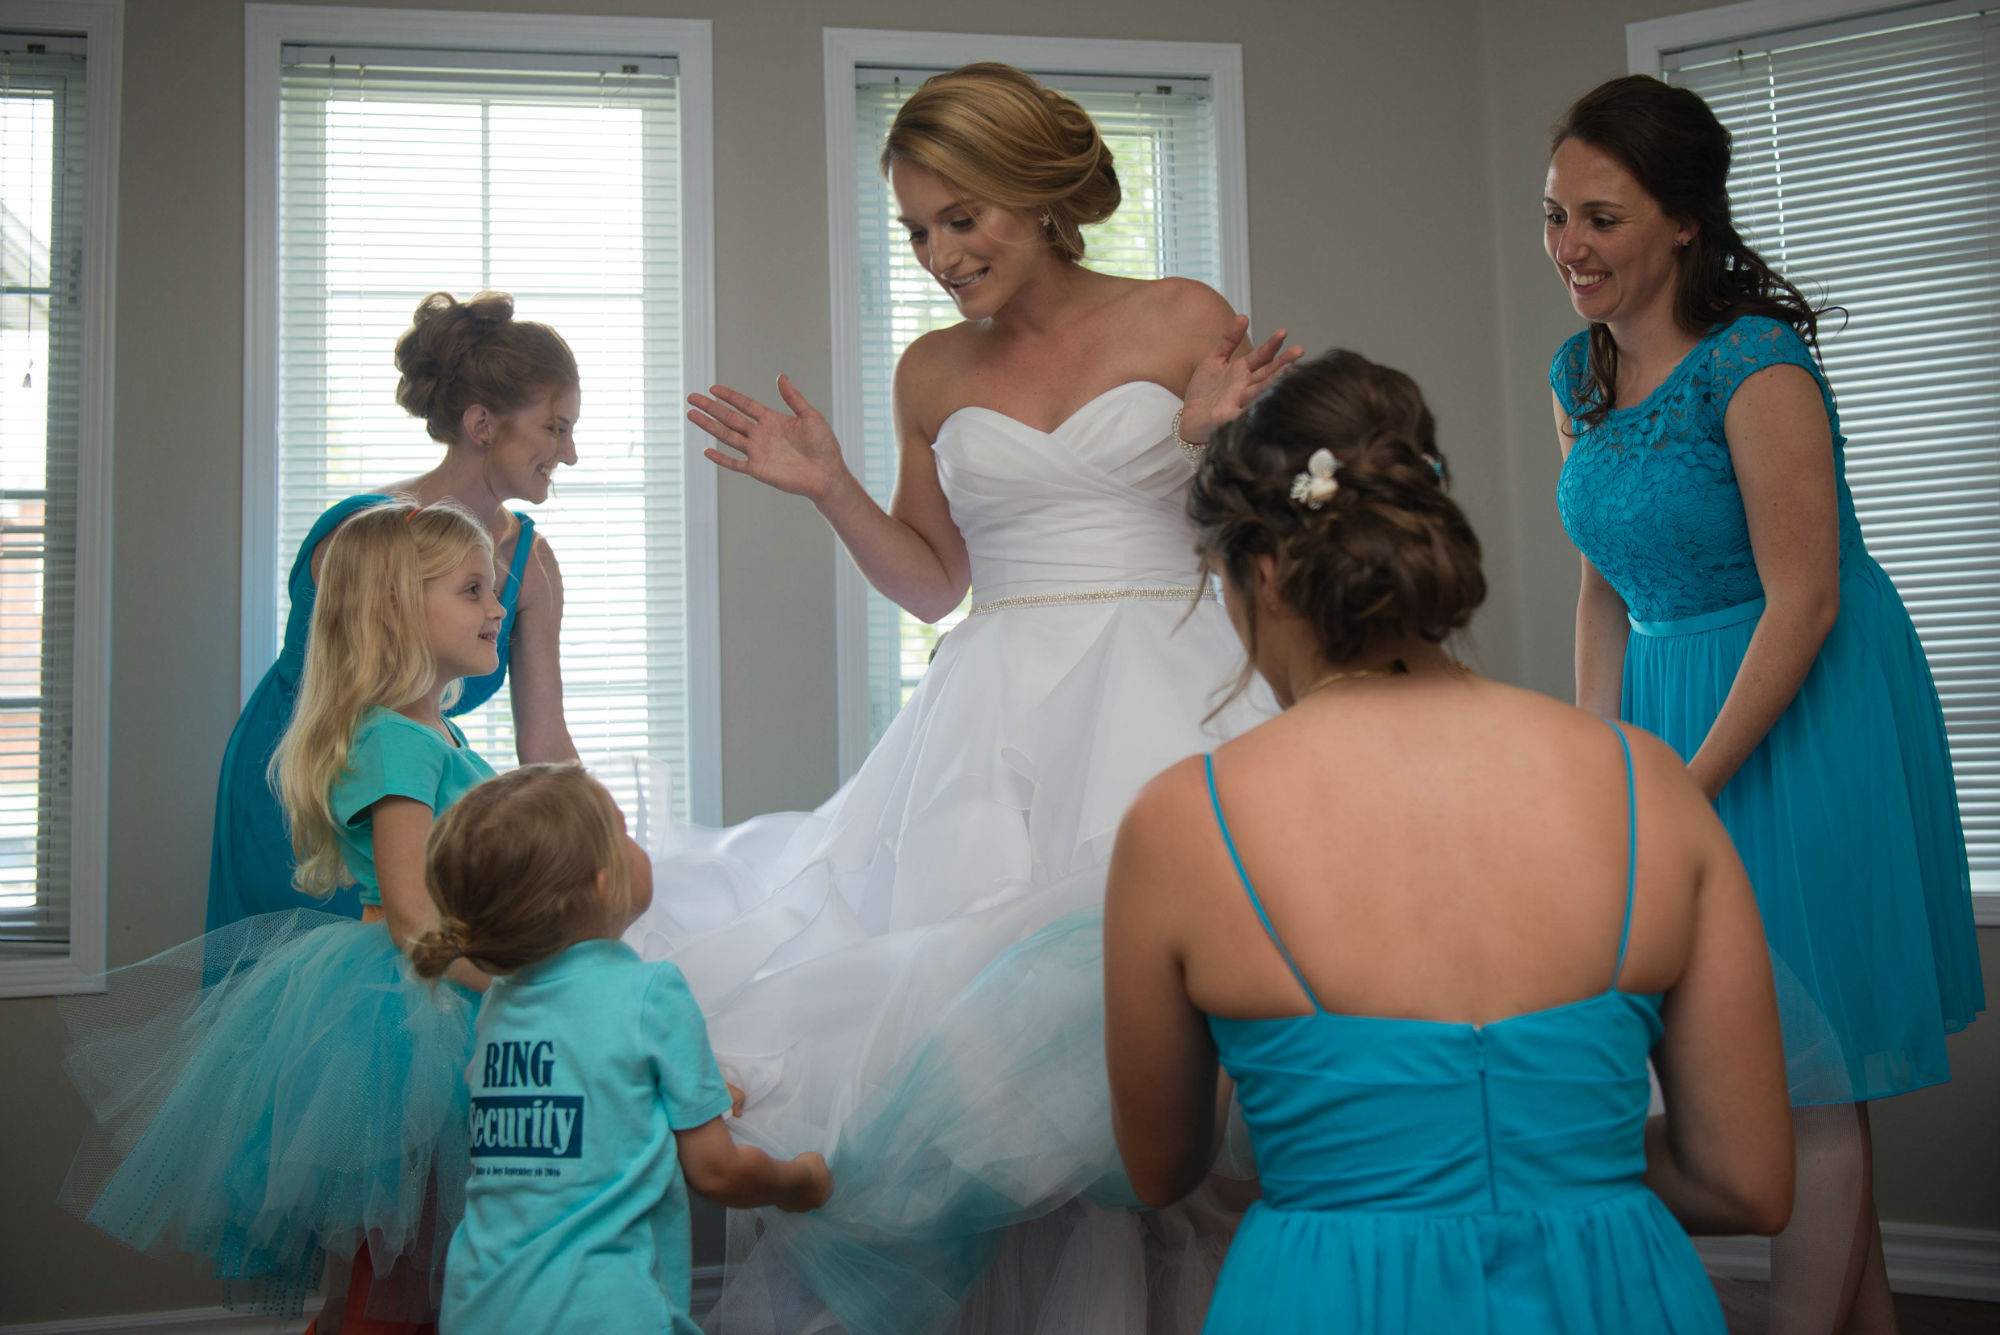 The Bridal Party Shaking The Brides Dress